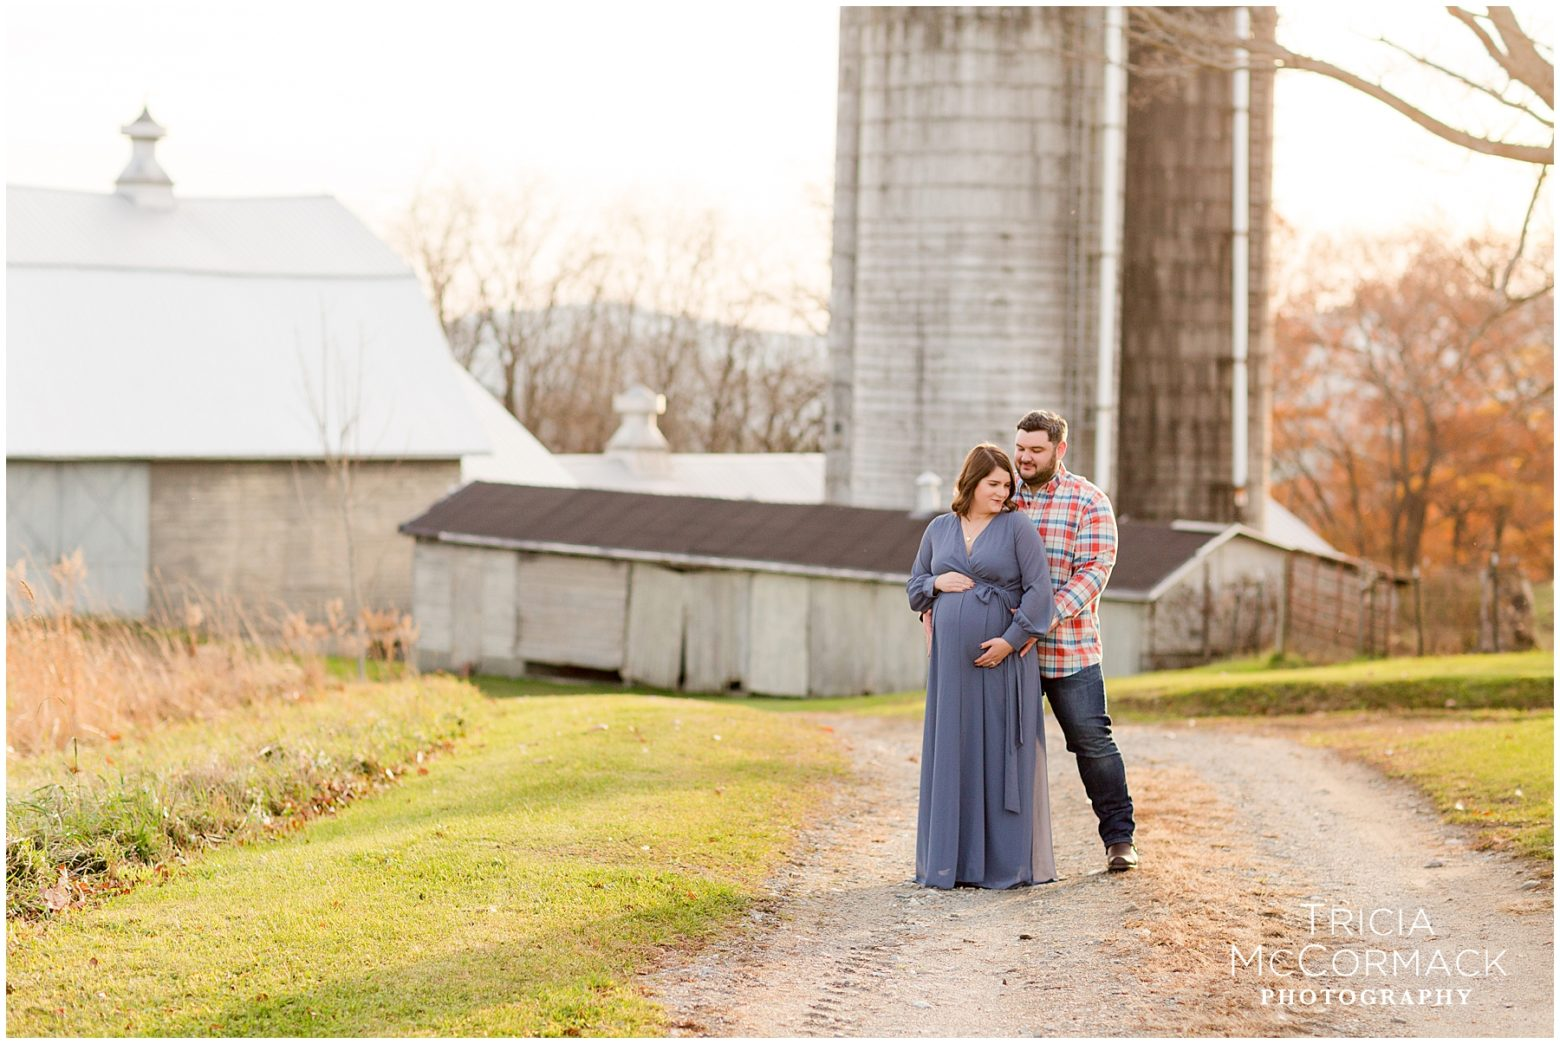 ICE HOUSE HILL FARM MATERNITY SESSION